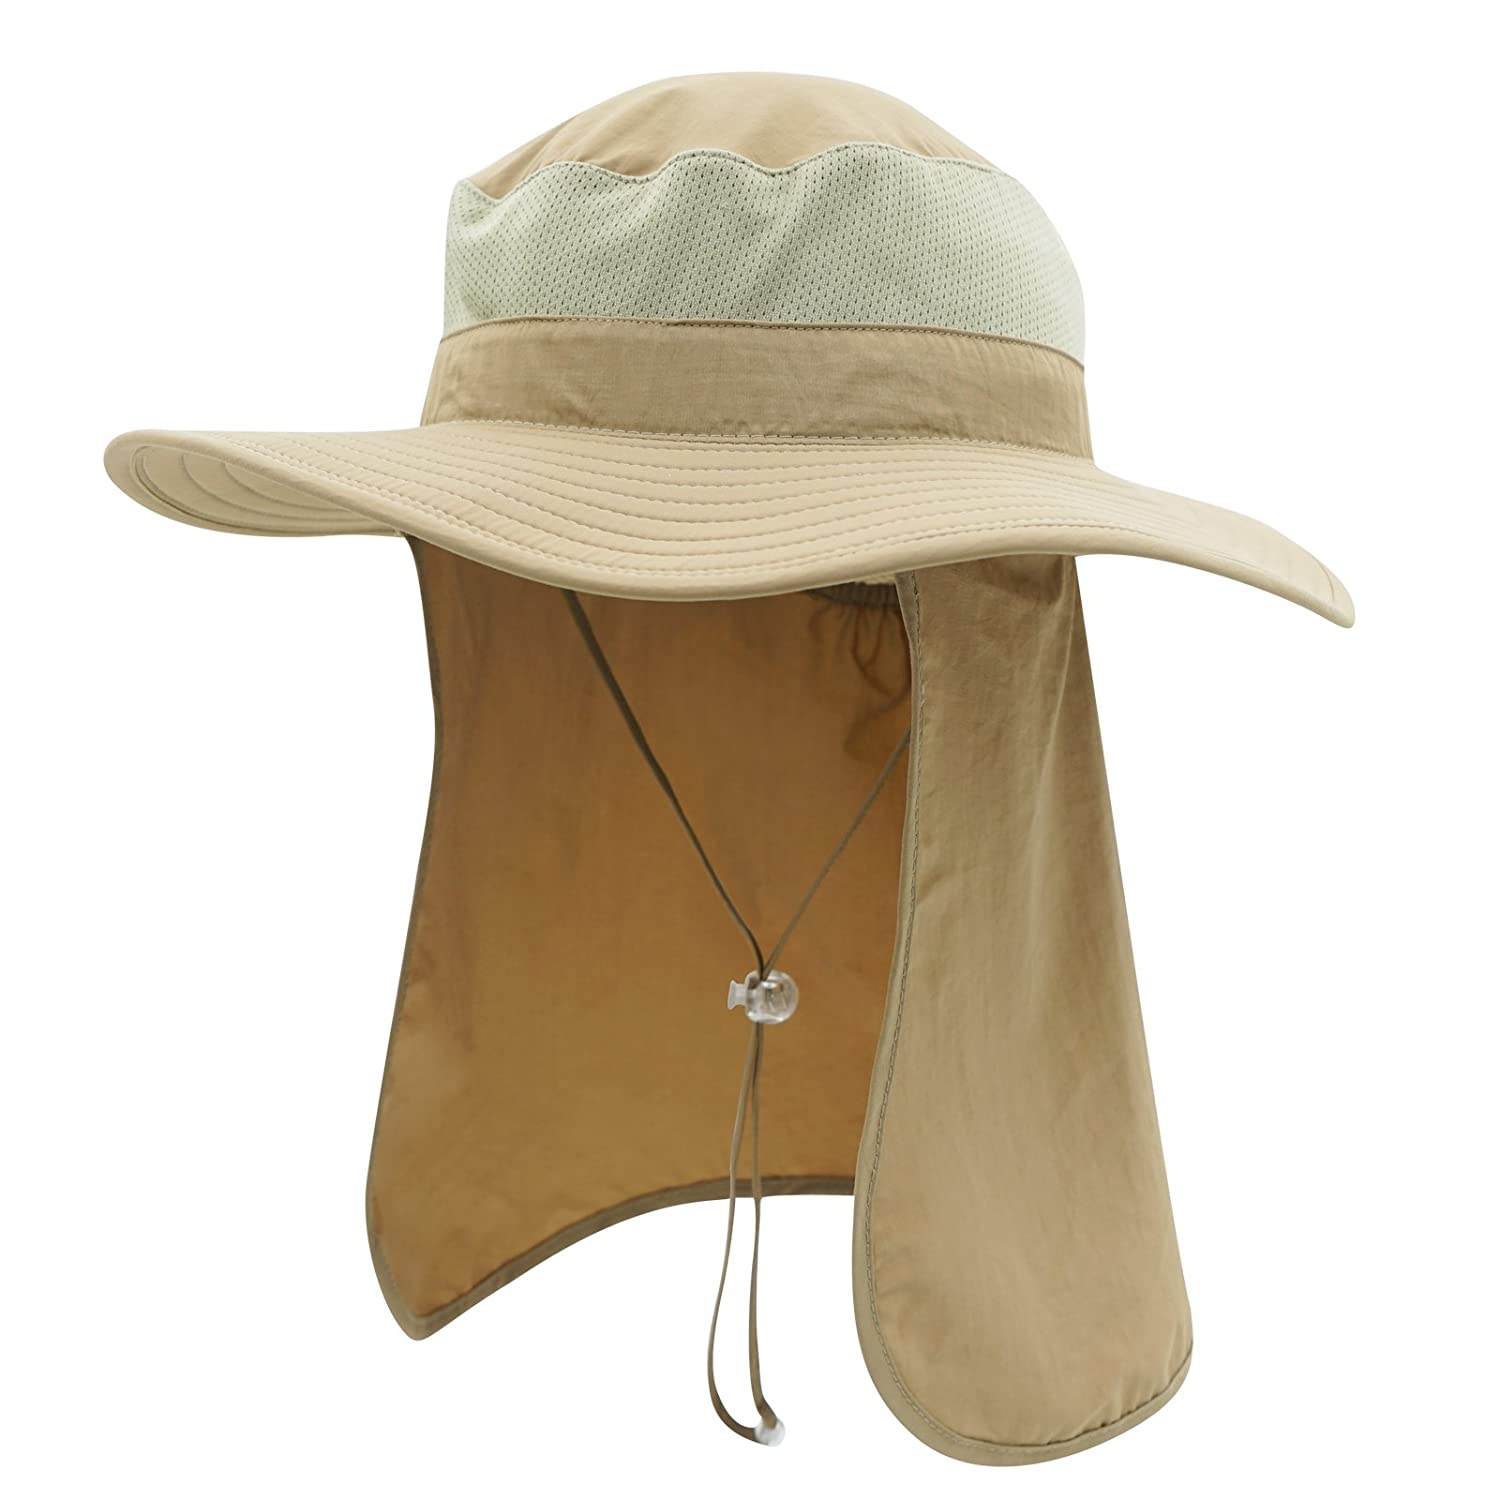 863ff65ef55 Home Prefer UPF50+ Men s Sun Hat with Neck Flap Mesh Bucket Hat Outdoor  Fishing Hat Khaki at Amazon Women s Clothing store